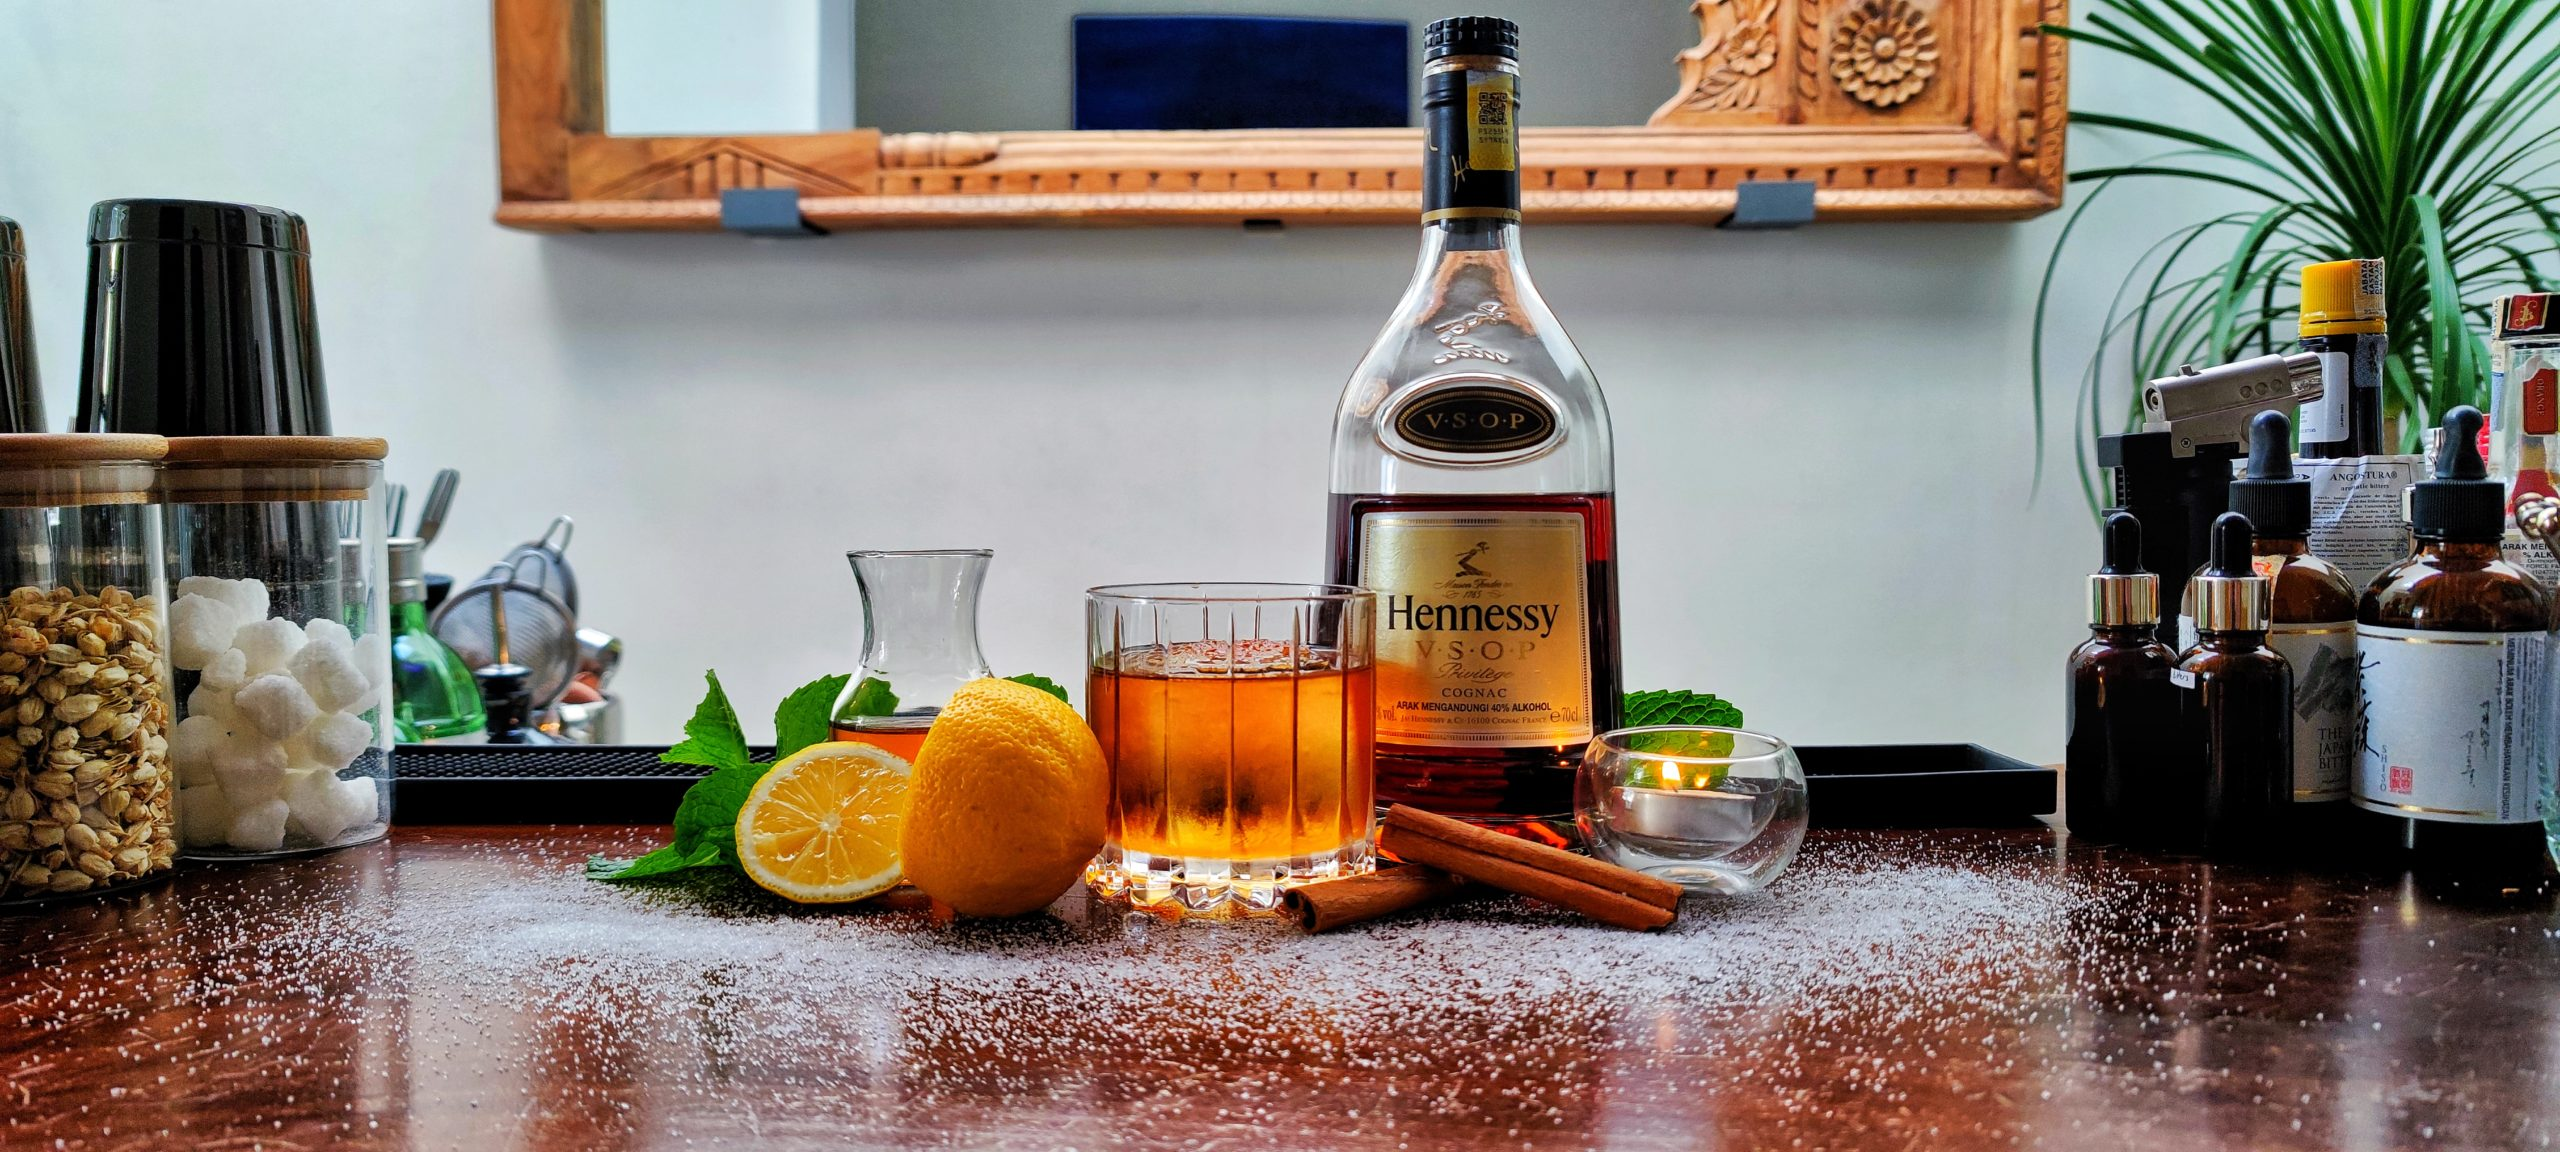 The Top 10 Bartenders For The #HennessyMyWay Challenge